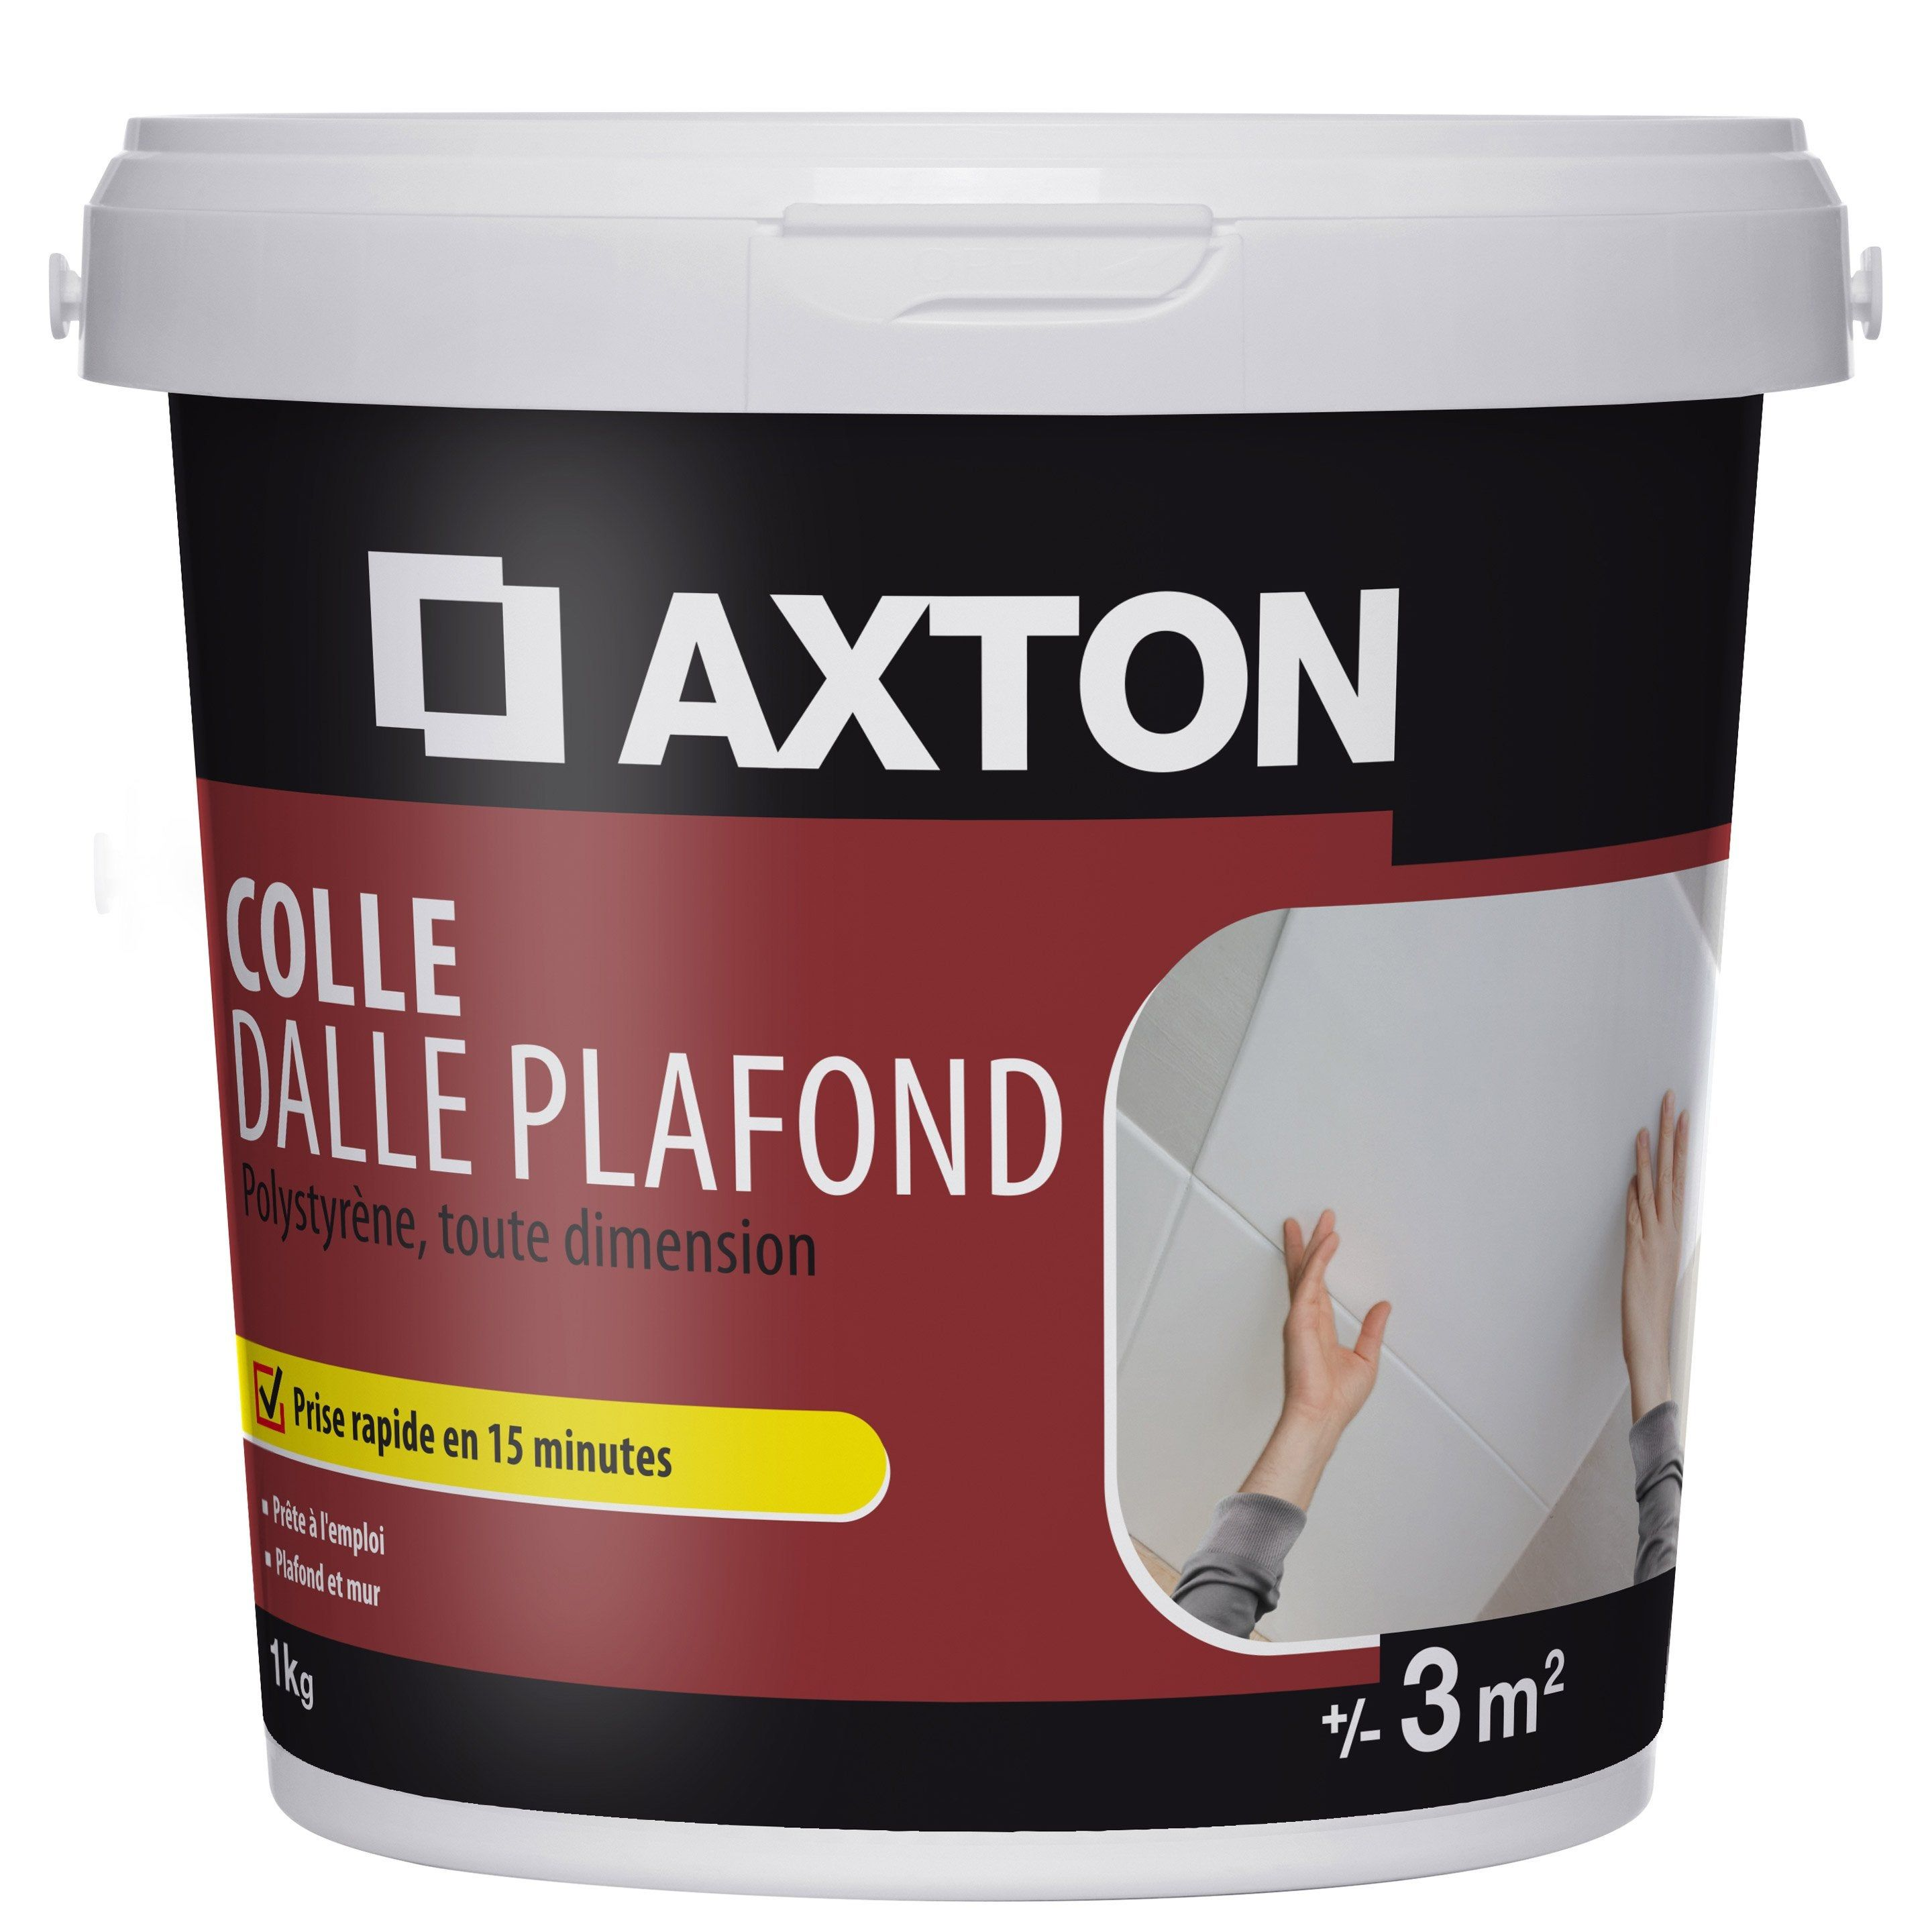 Colle Polystyrène Dalle Plafond Axton 1 Kg Products En